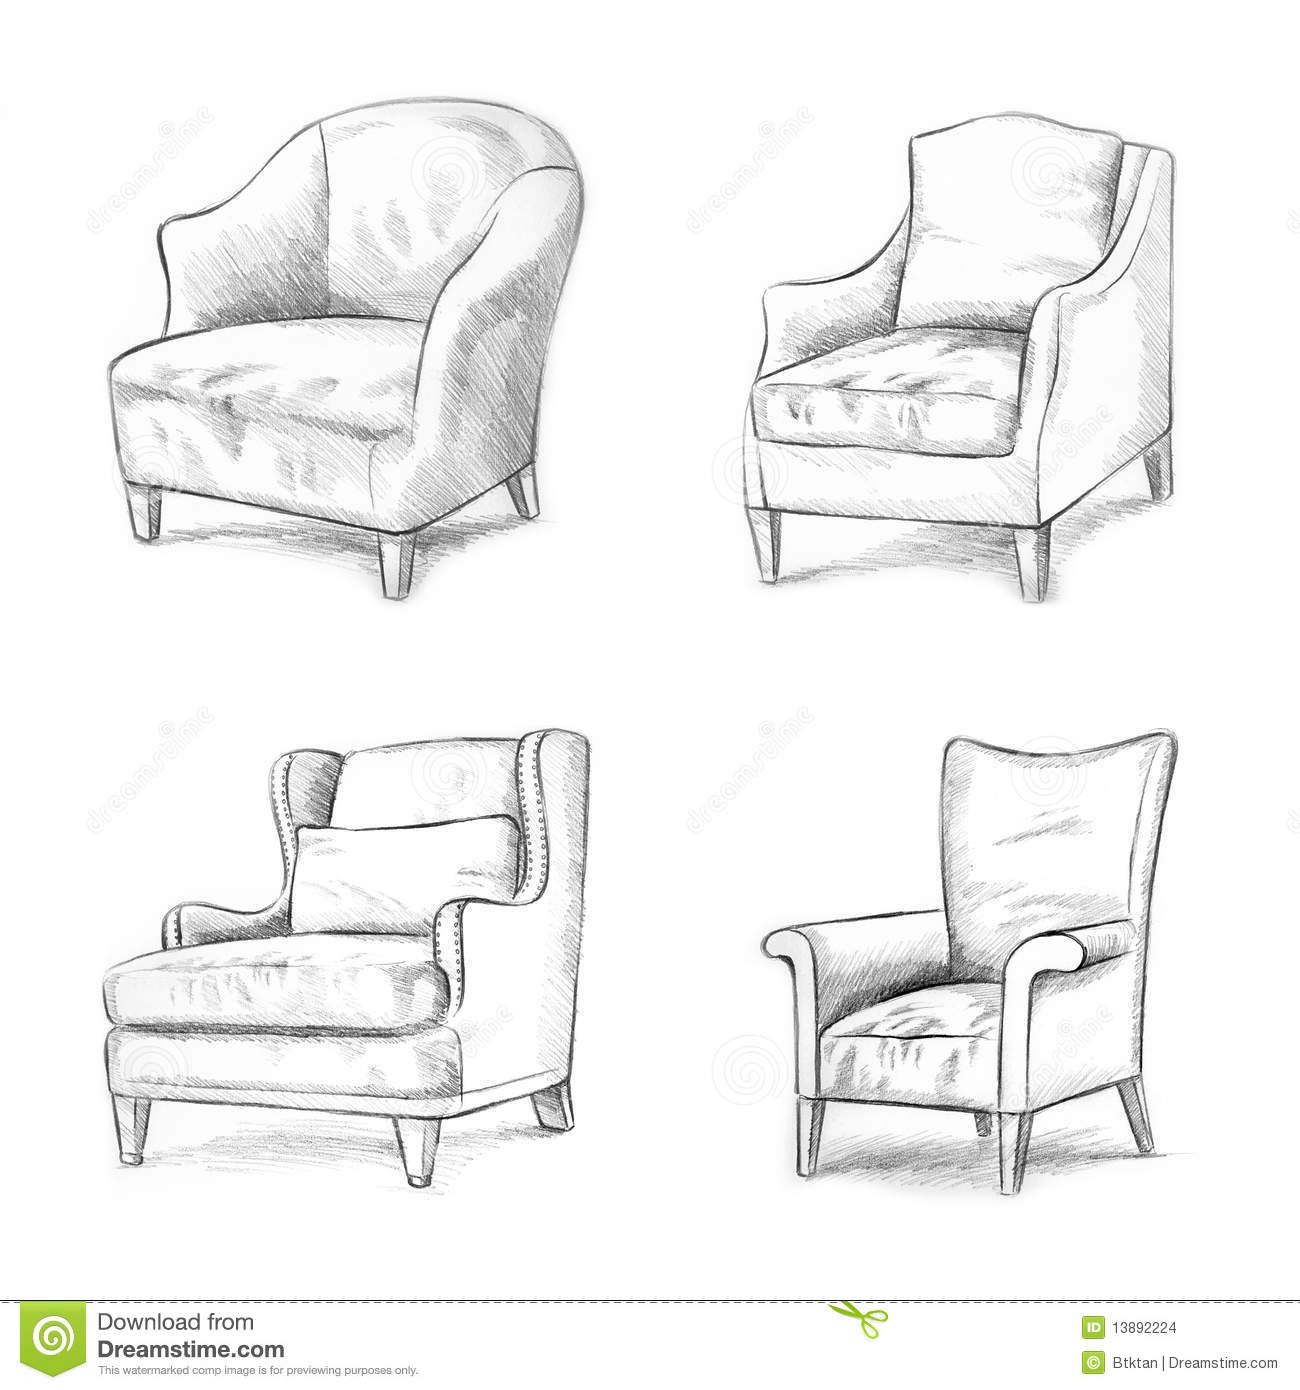 chair design styles lifetime parts sketching stock illustration image of sketch